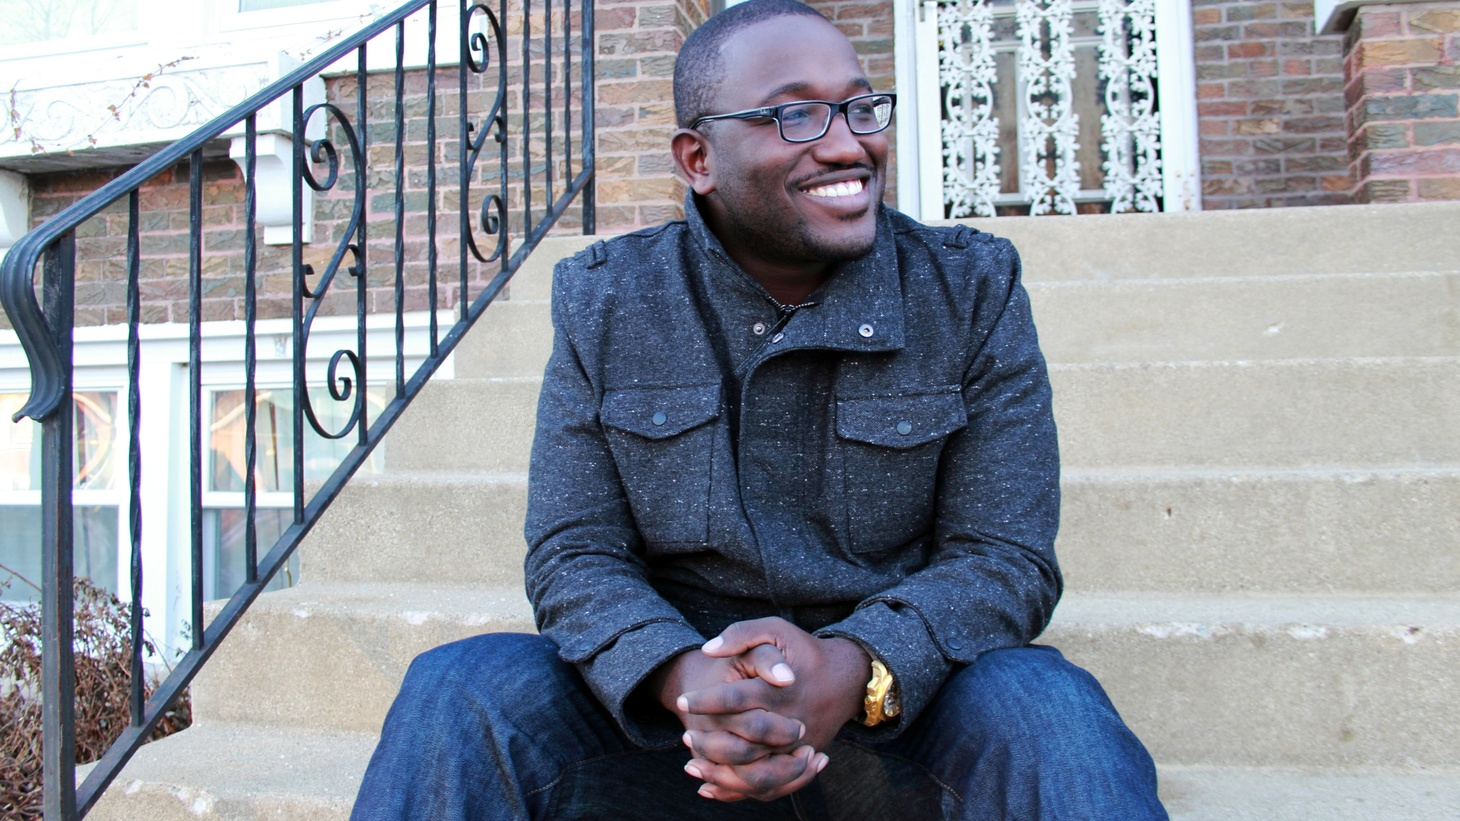 Comedian Hannibal Buress is a cast member on Comedy Central's Broad City as well as the co-host of The Eric Andre Show on Adult Swim. In the midst of a nationwide stand up tour, he laid out the similarities between hip hop and comedy, from lyricism and pacing to crowd interaction in his Guest DJ set.